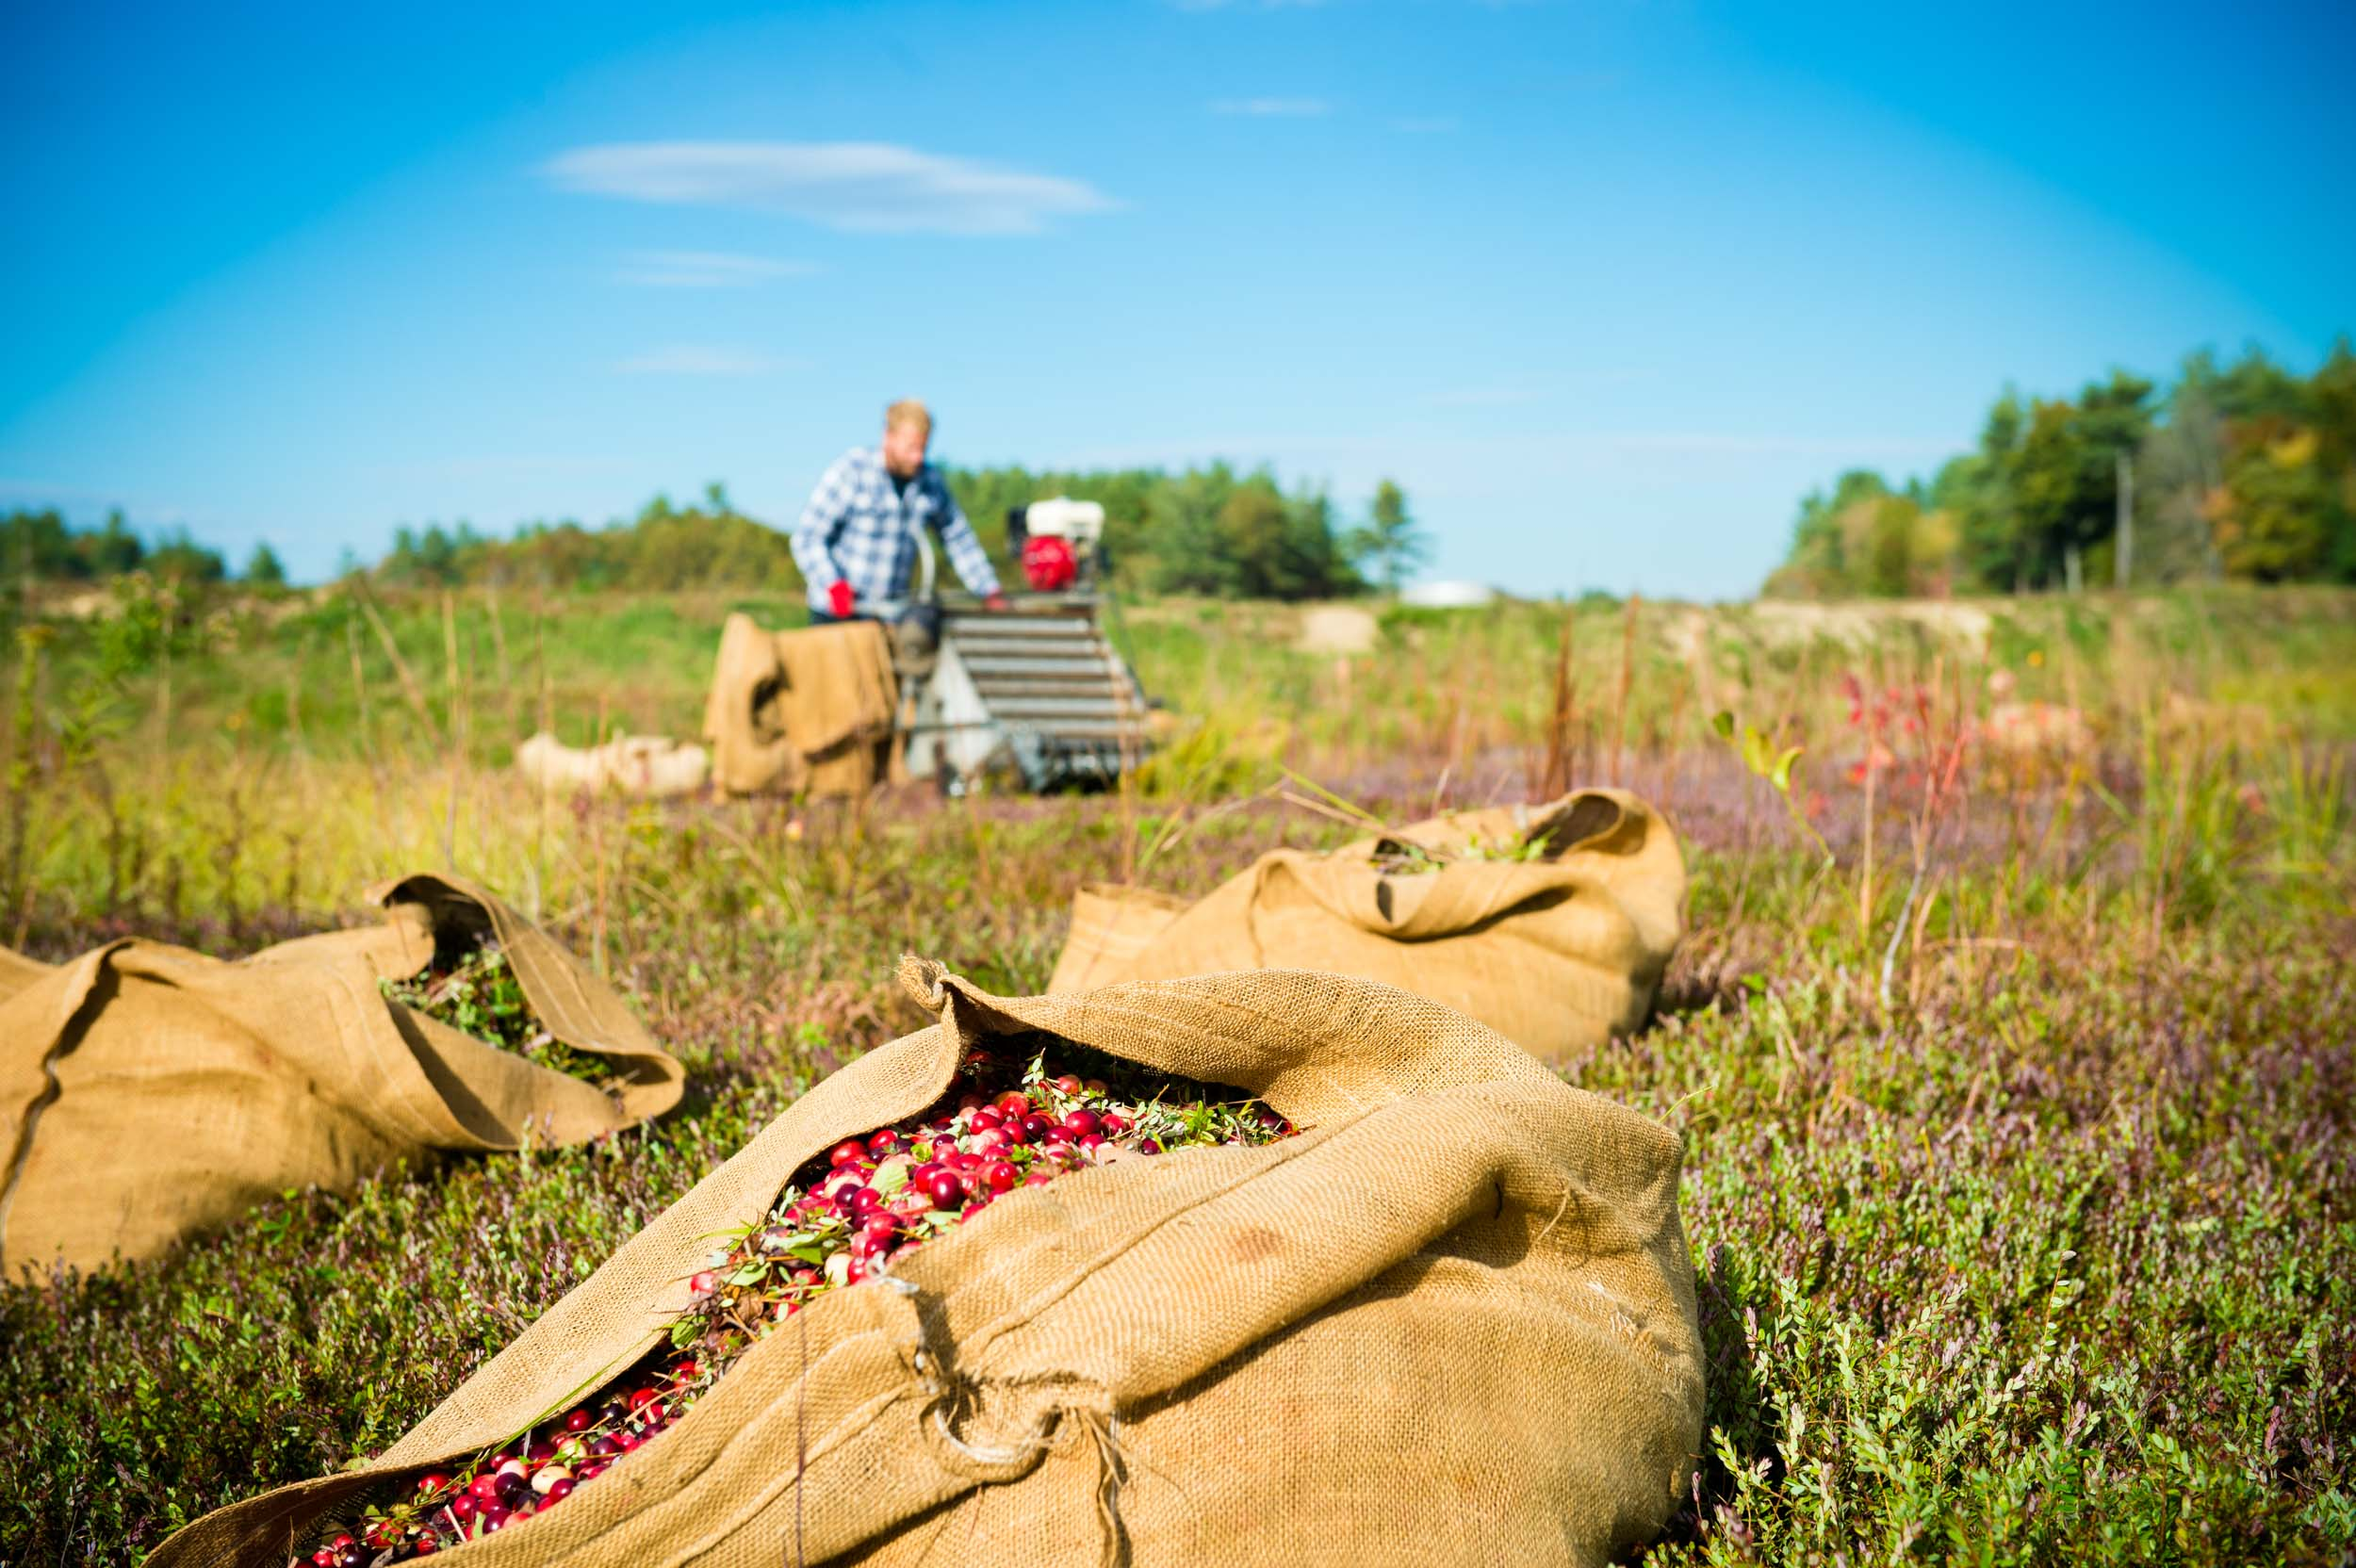 Maura Wayman Photography, Photography, Corporate Photography, stock, stock images, Massachusetts, Boston, Metro West, Wellesley, Cranberries, berries, berry, cranberry, red, red berries, farmer, harvest, field, machine, farming machine, water, Cape Cod, cranberry harvest, fall, dry harvest, dry picking, picking, burlap bag,